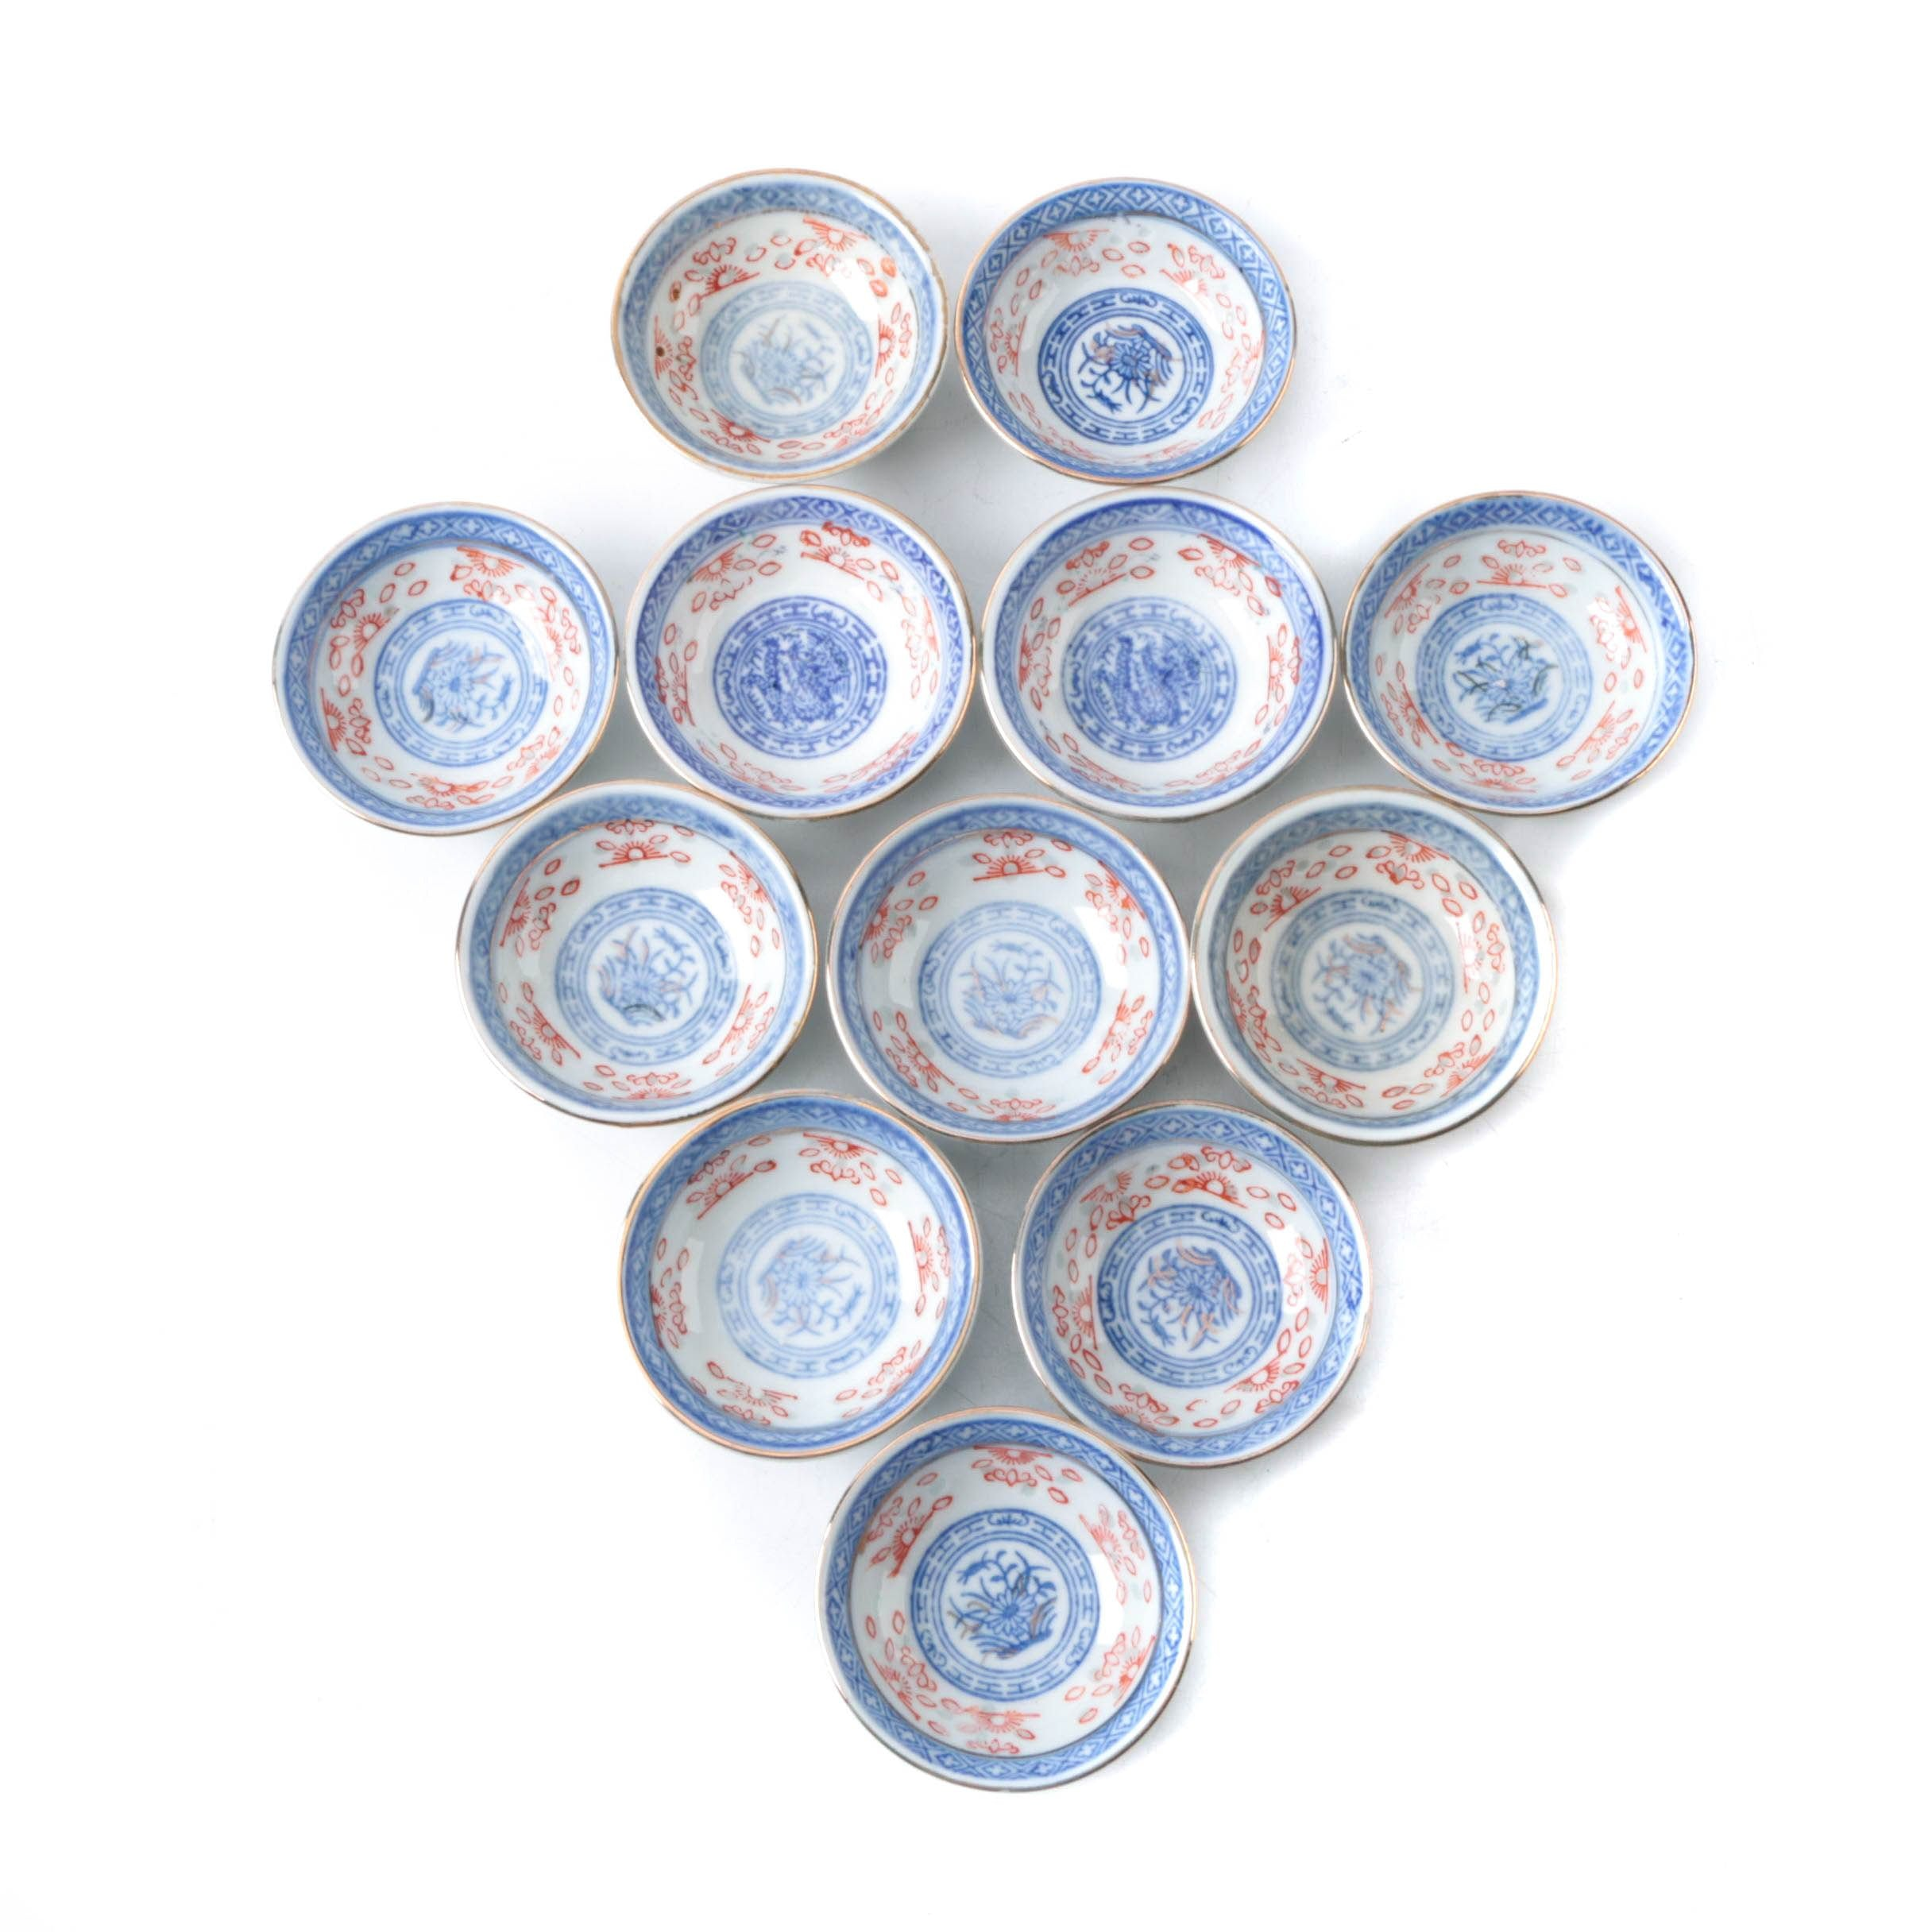 Small Chinese Porcelain Bowls